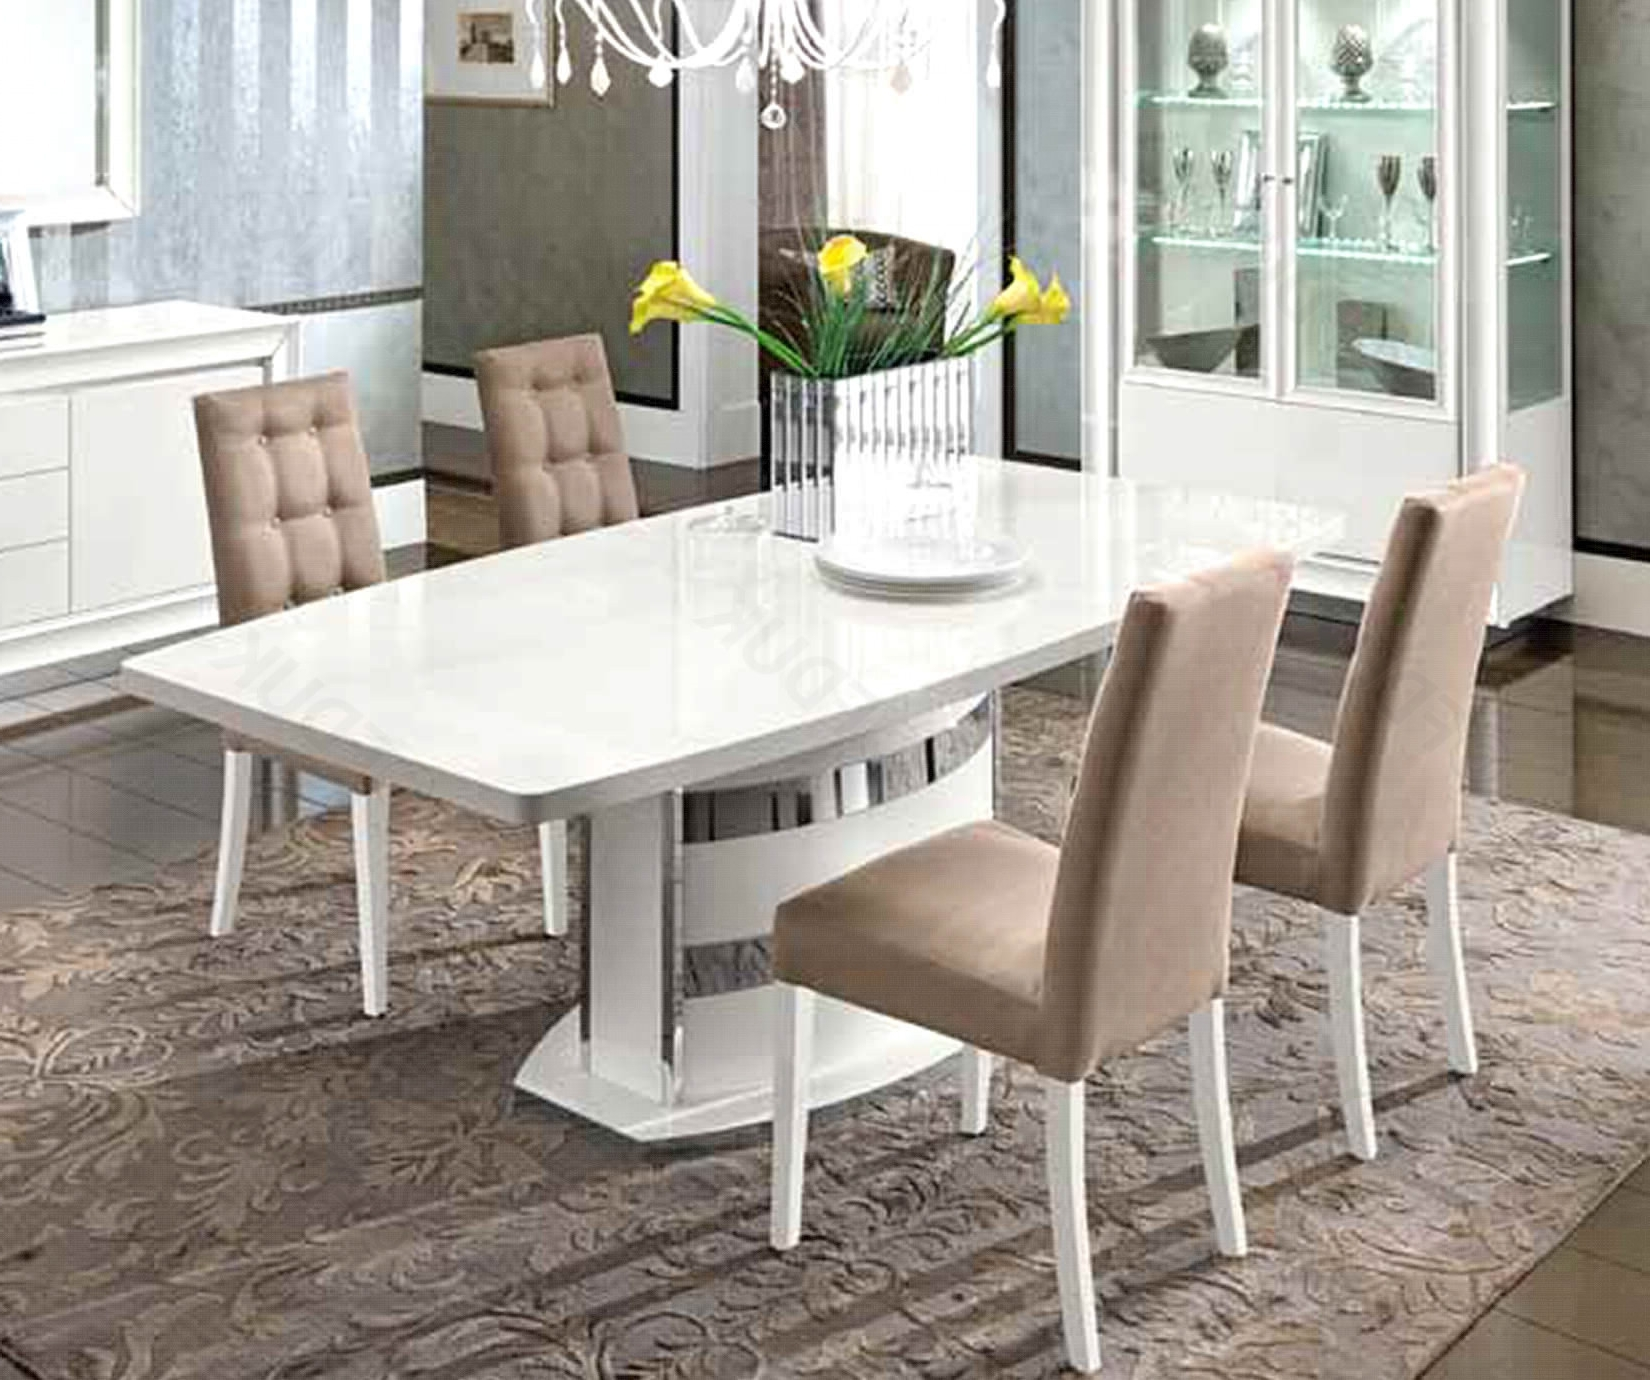 Dama Bianca White High Gloss Extending Pertaining To Best And Newest High Gloss White Extending Dining Tables (Gallery 7 of 25)